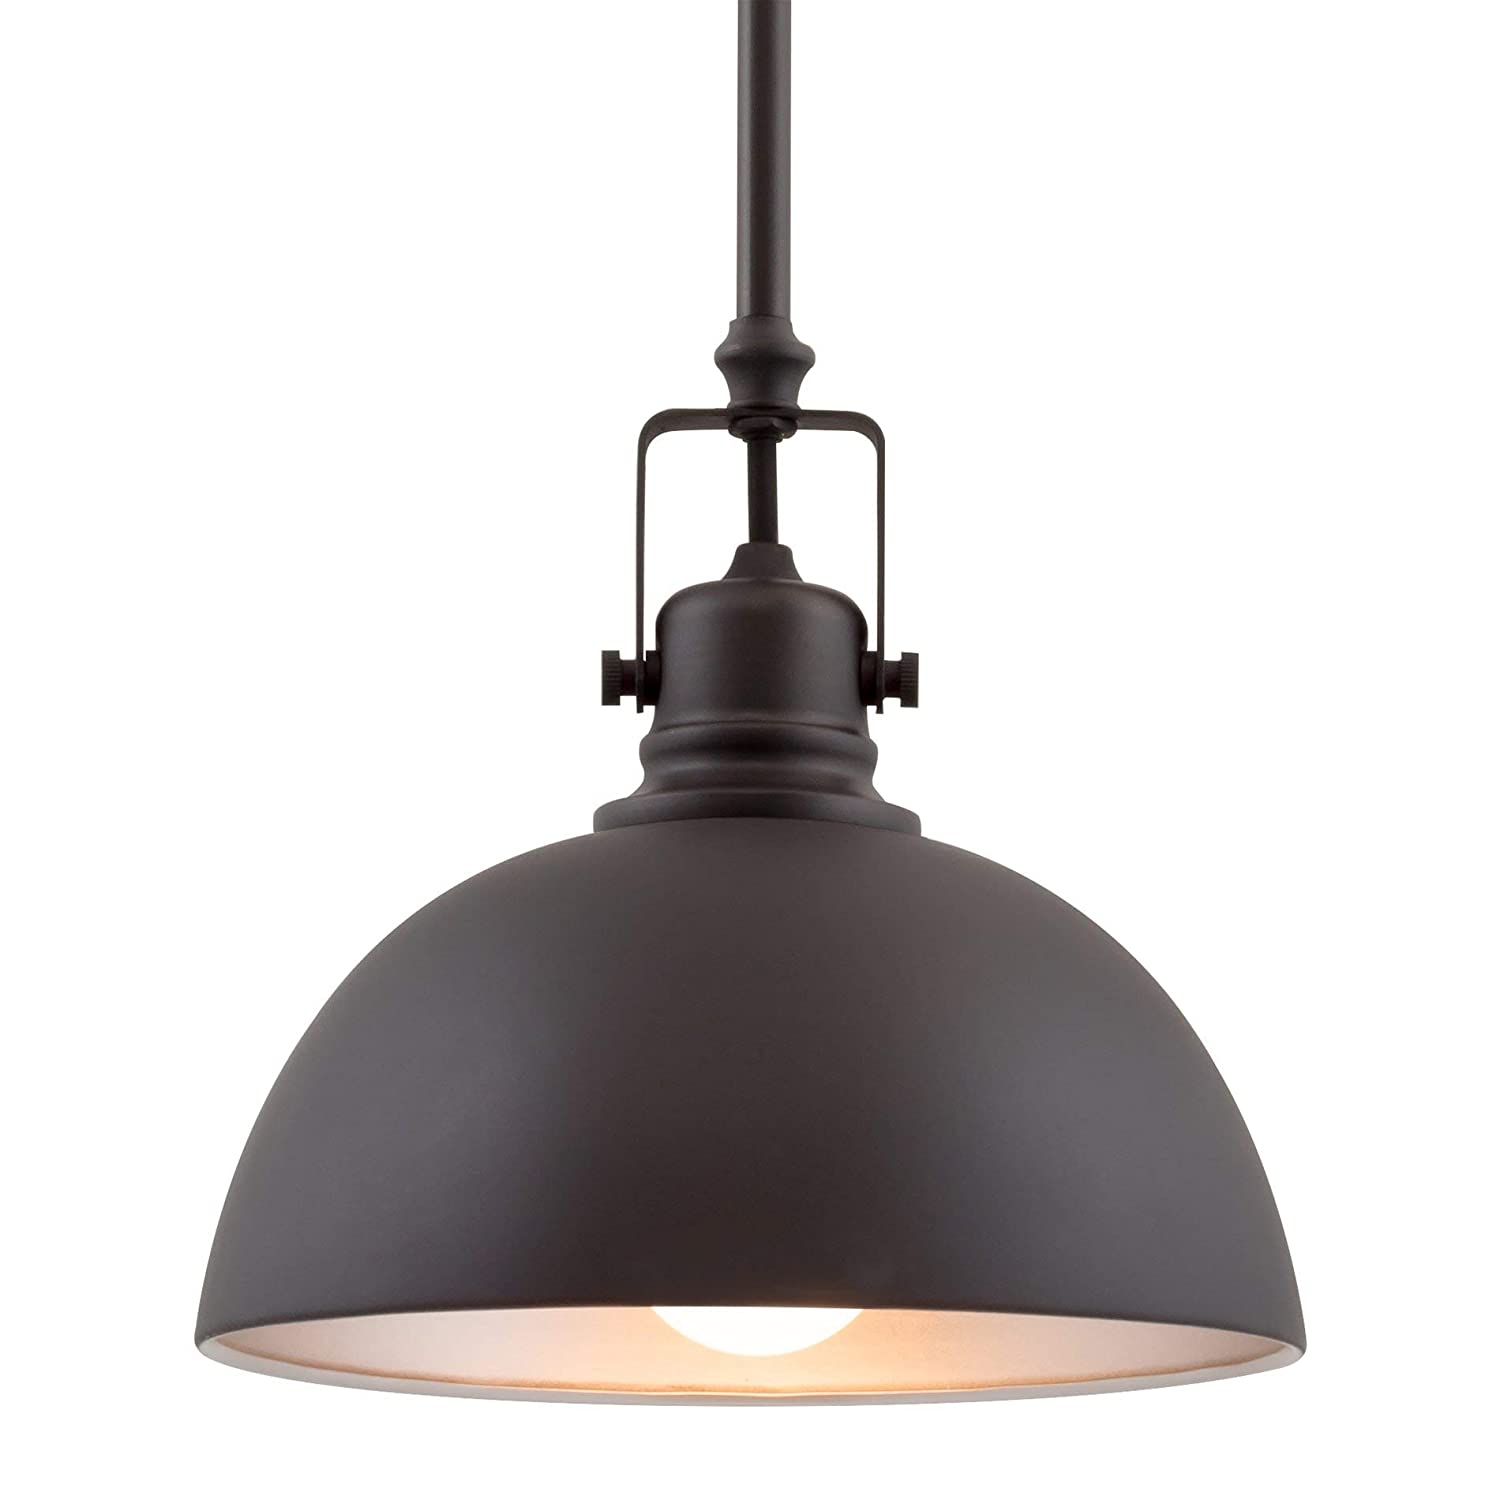 "Kira Home Belle 9"" Contemporary Industrial 1-Light Pendant Light, Adjustable Length + Shade Swivel Joint, Oil-Rubbed Bronze Finish"